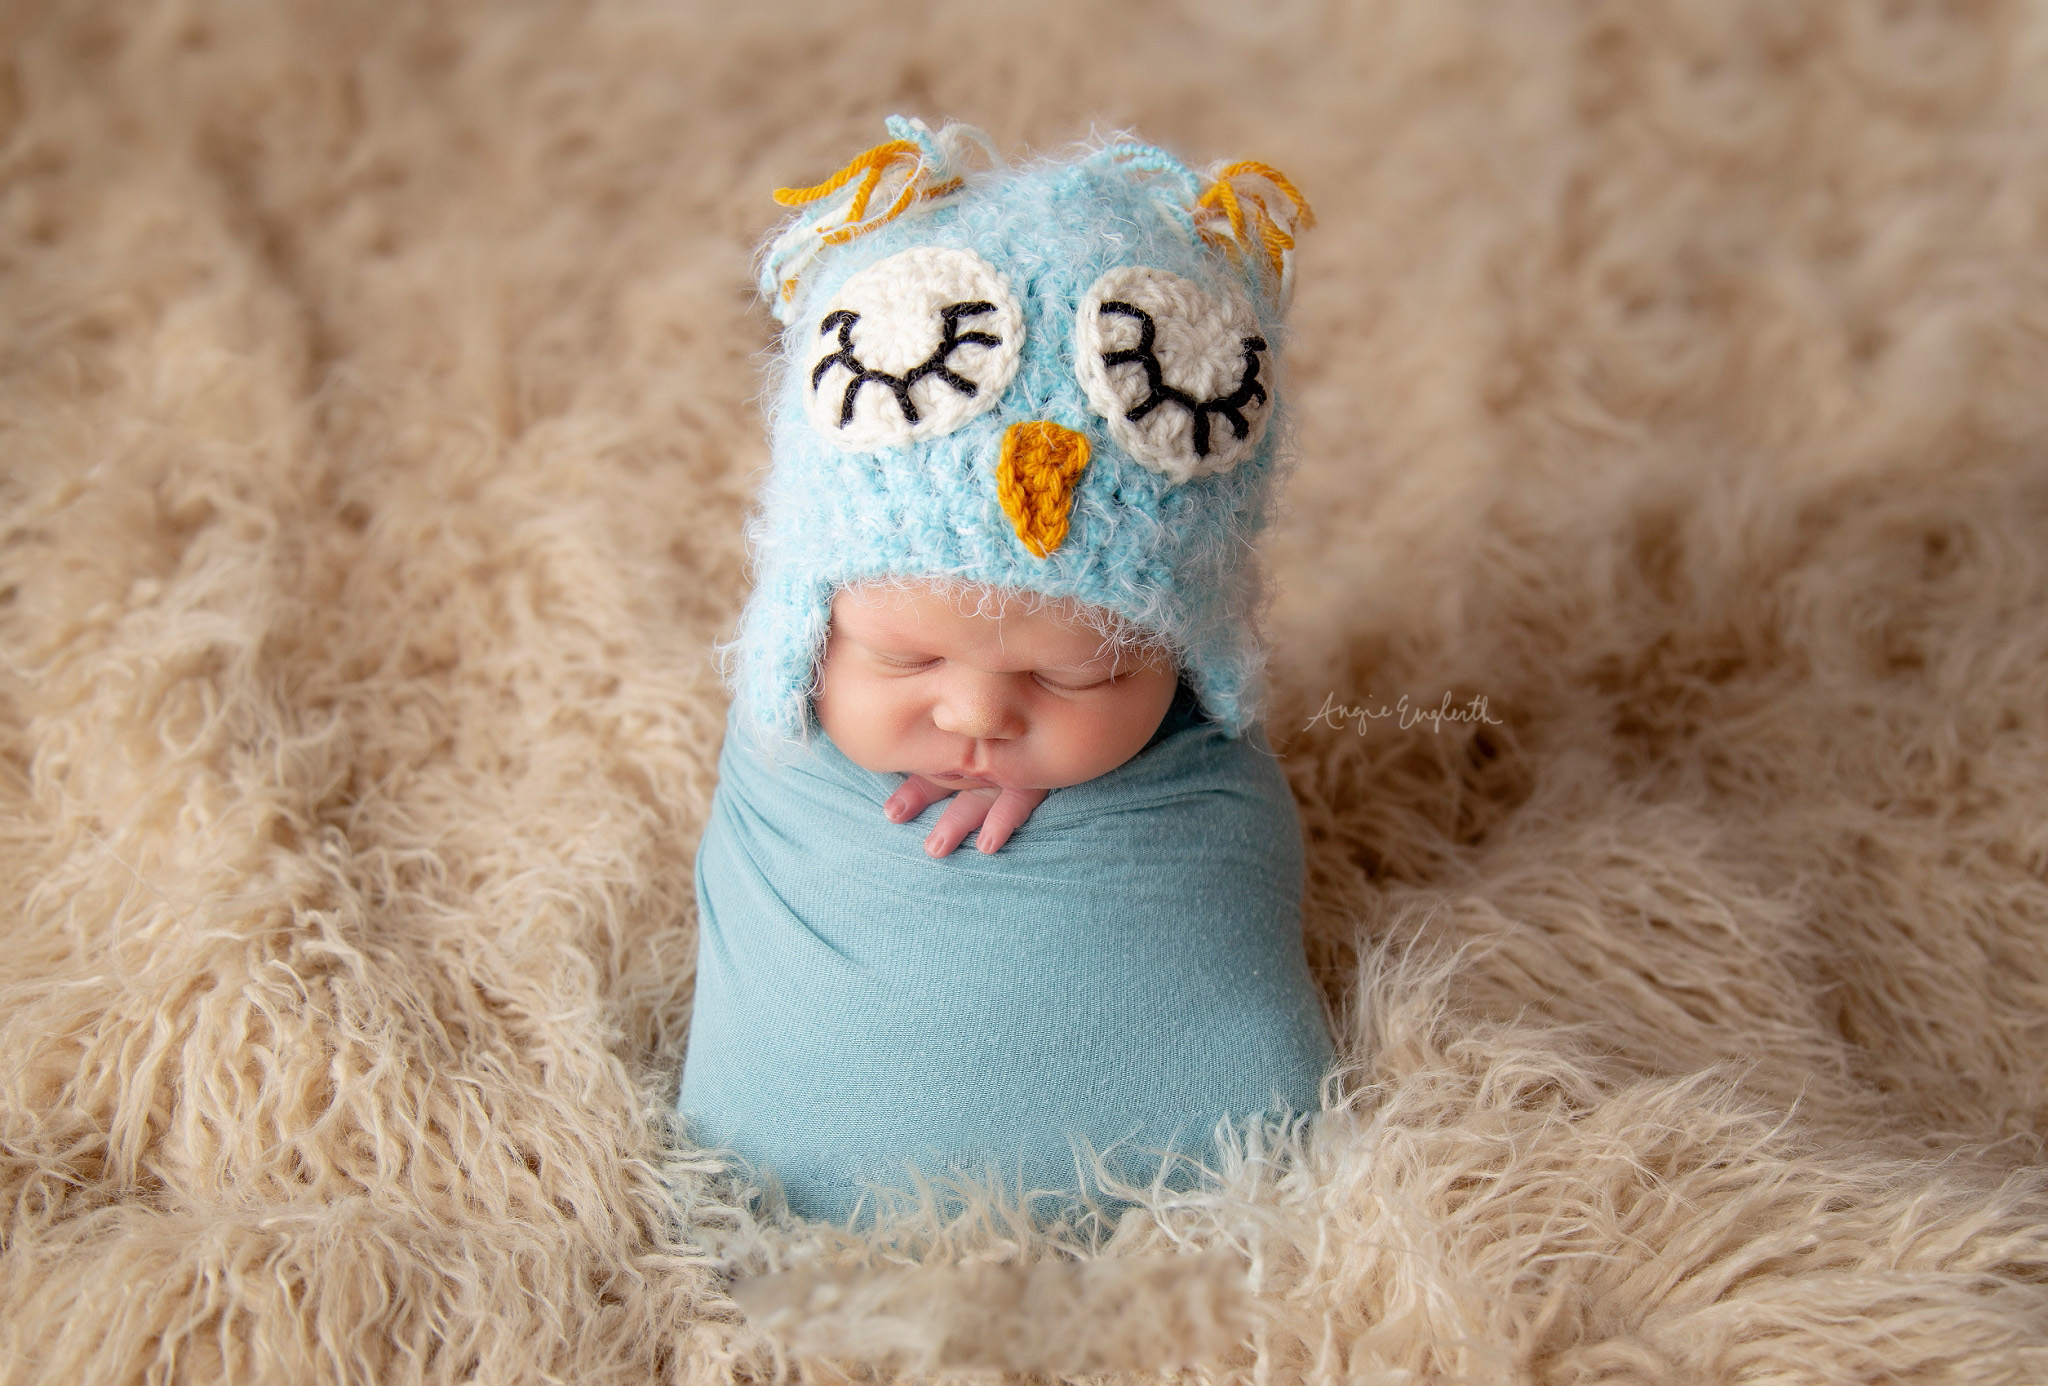 lancaster_newborn_photographer_angie_englerth_central_pa_024.jpg